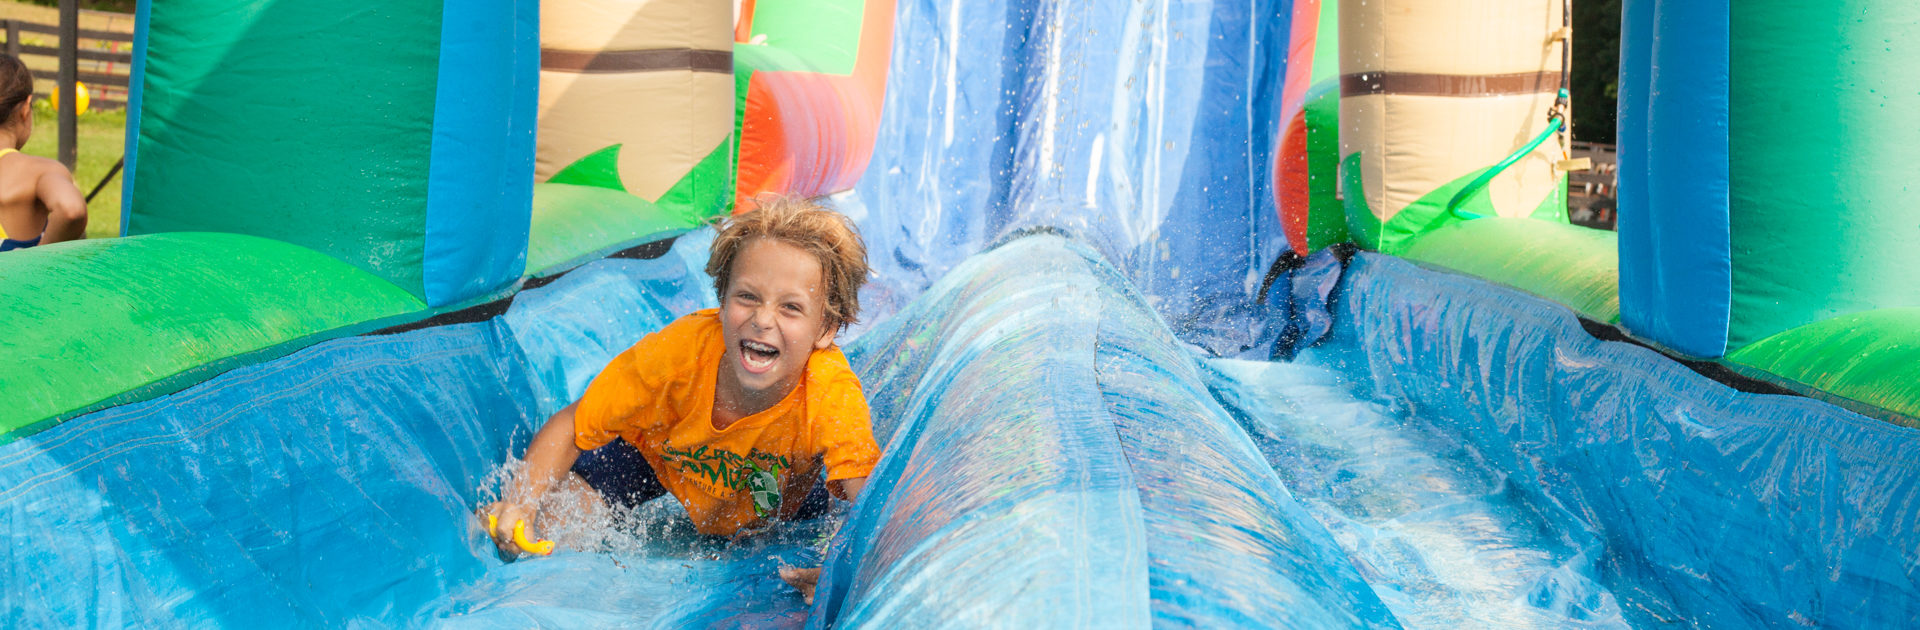 young boy with huge smiling going down a water slide